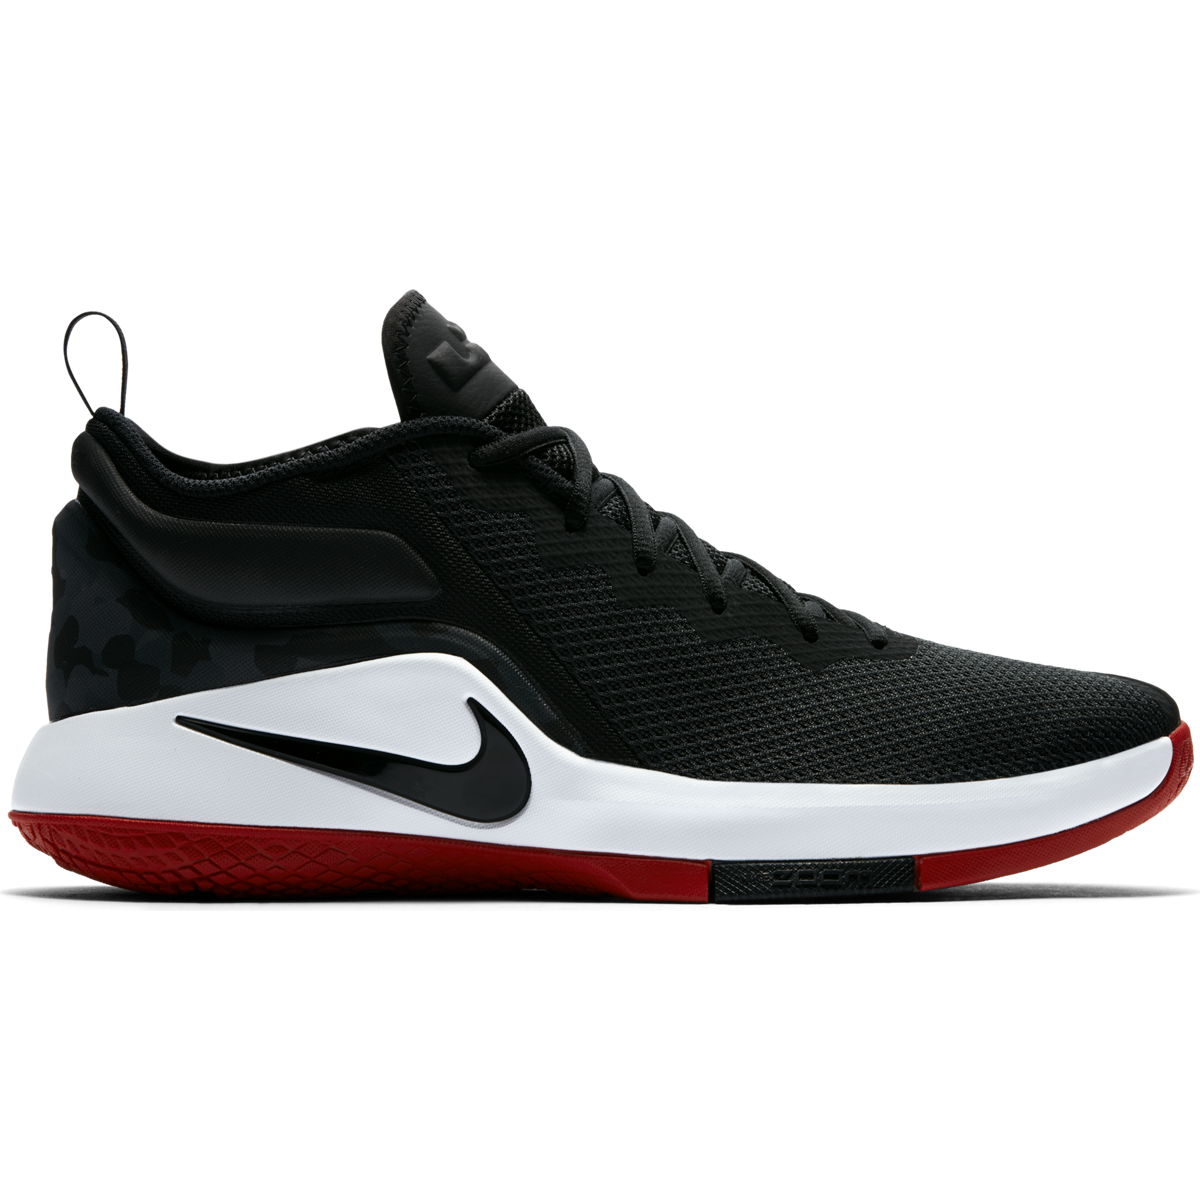 Nike Witness Shoes Basketball